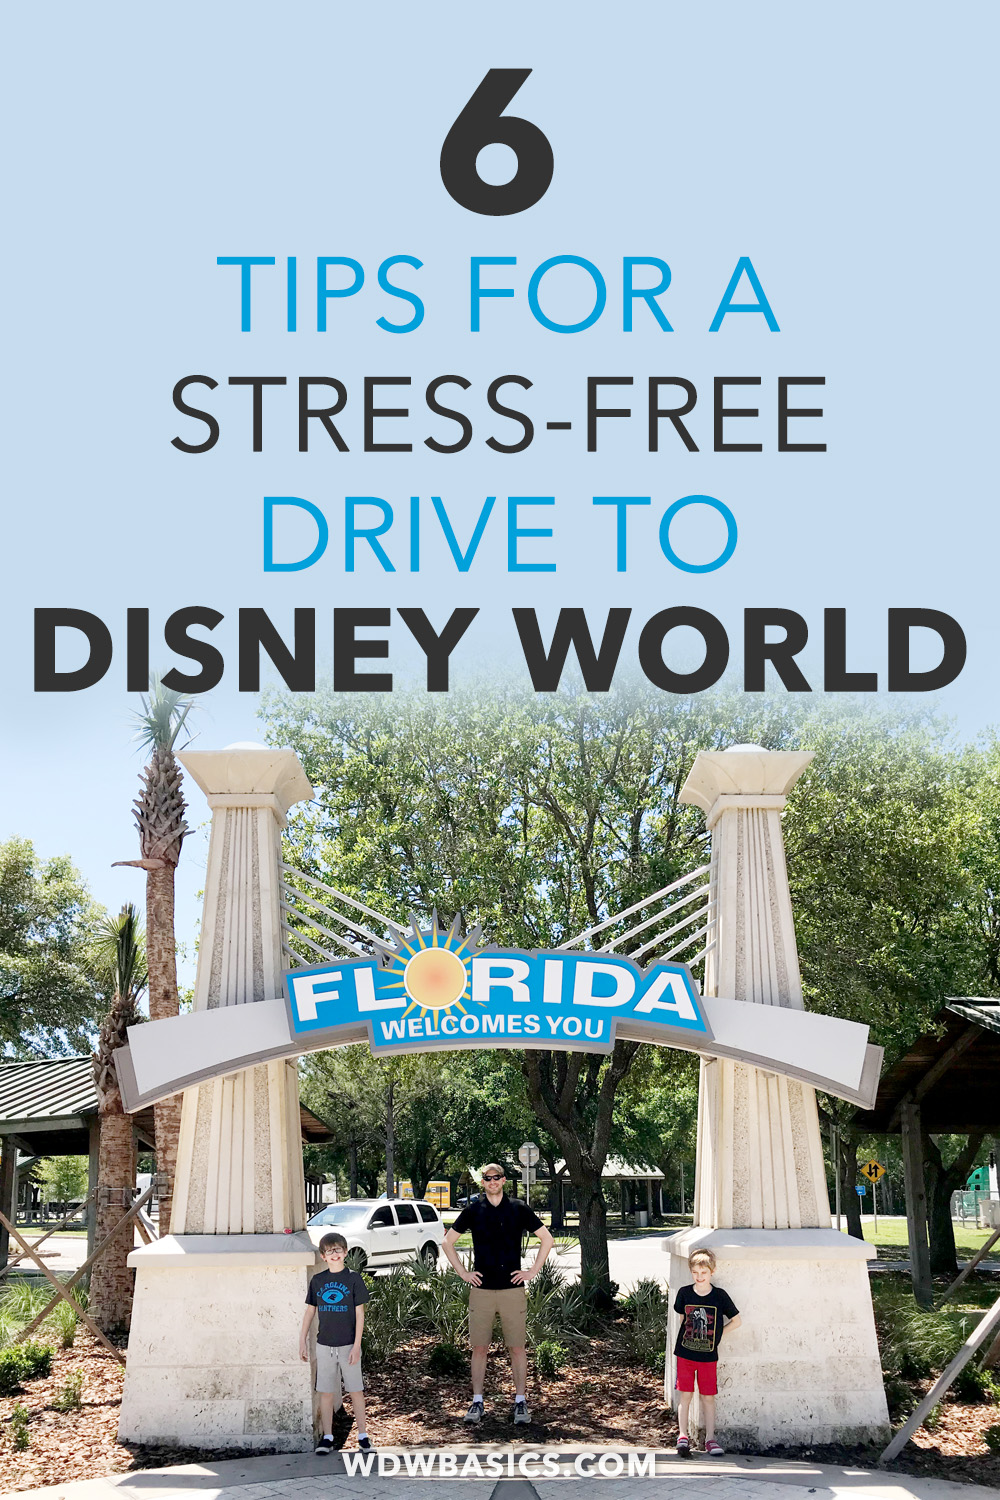 6 Tips for a stress-free drive to Disney World